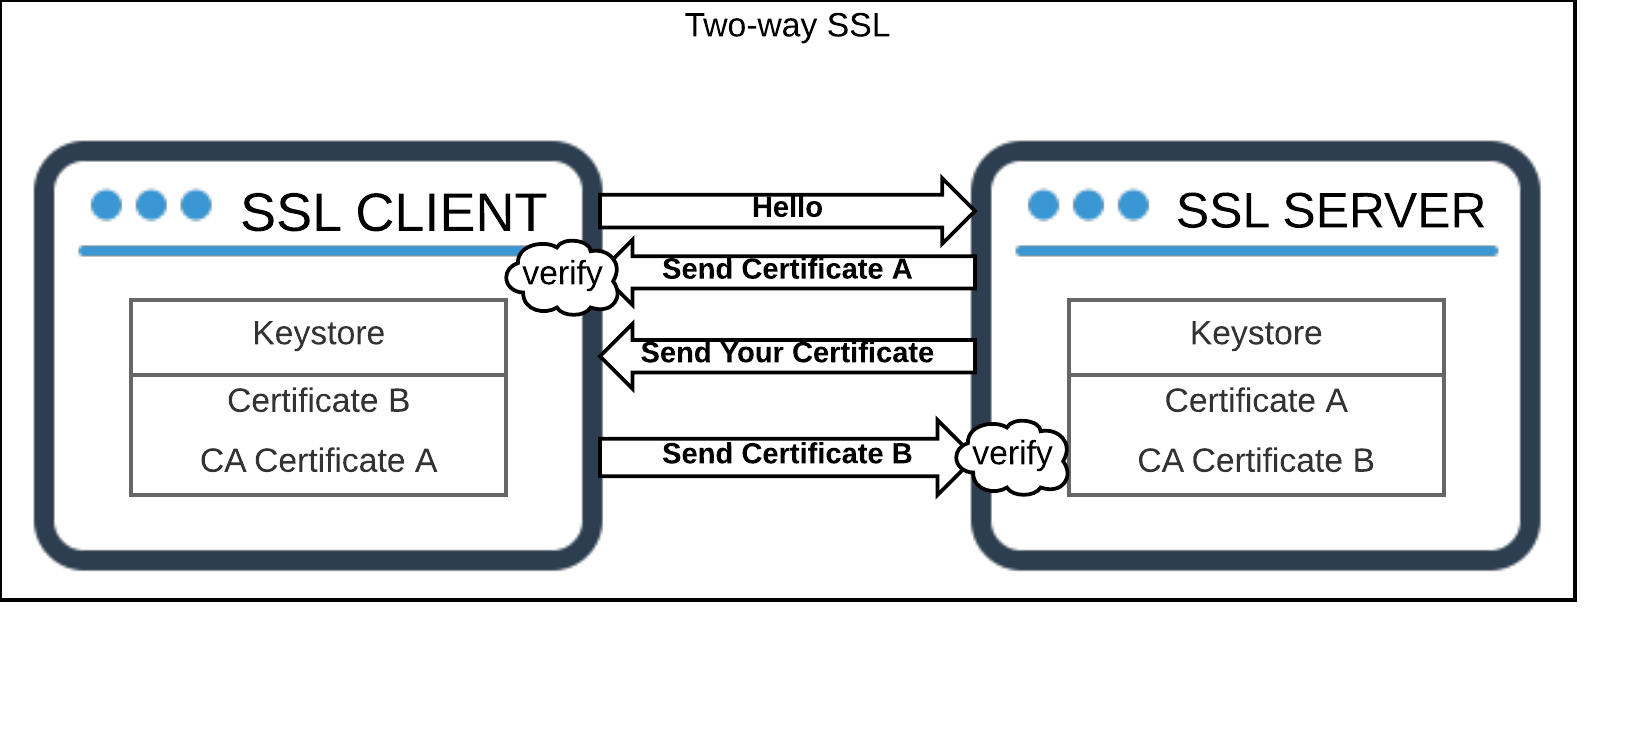 Configuring Two Way Ssl On Eap 7